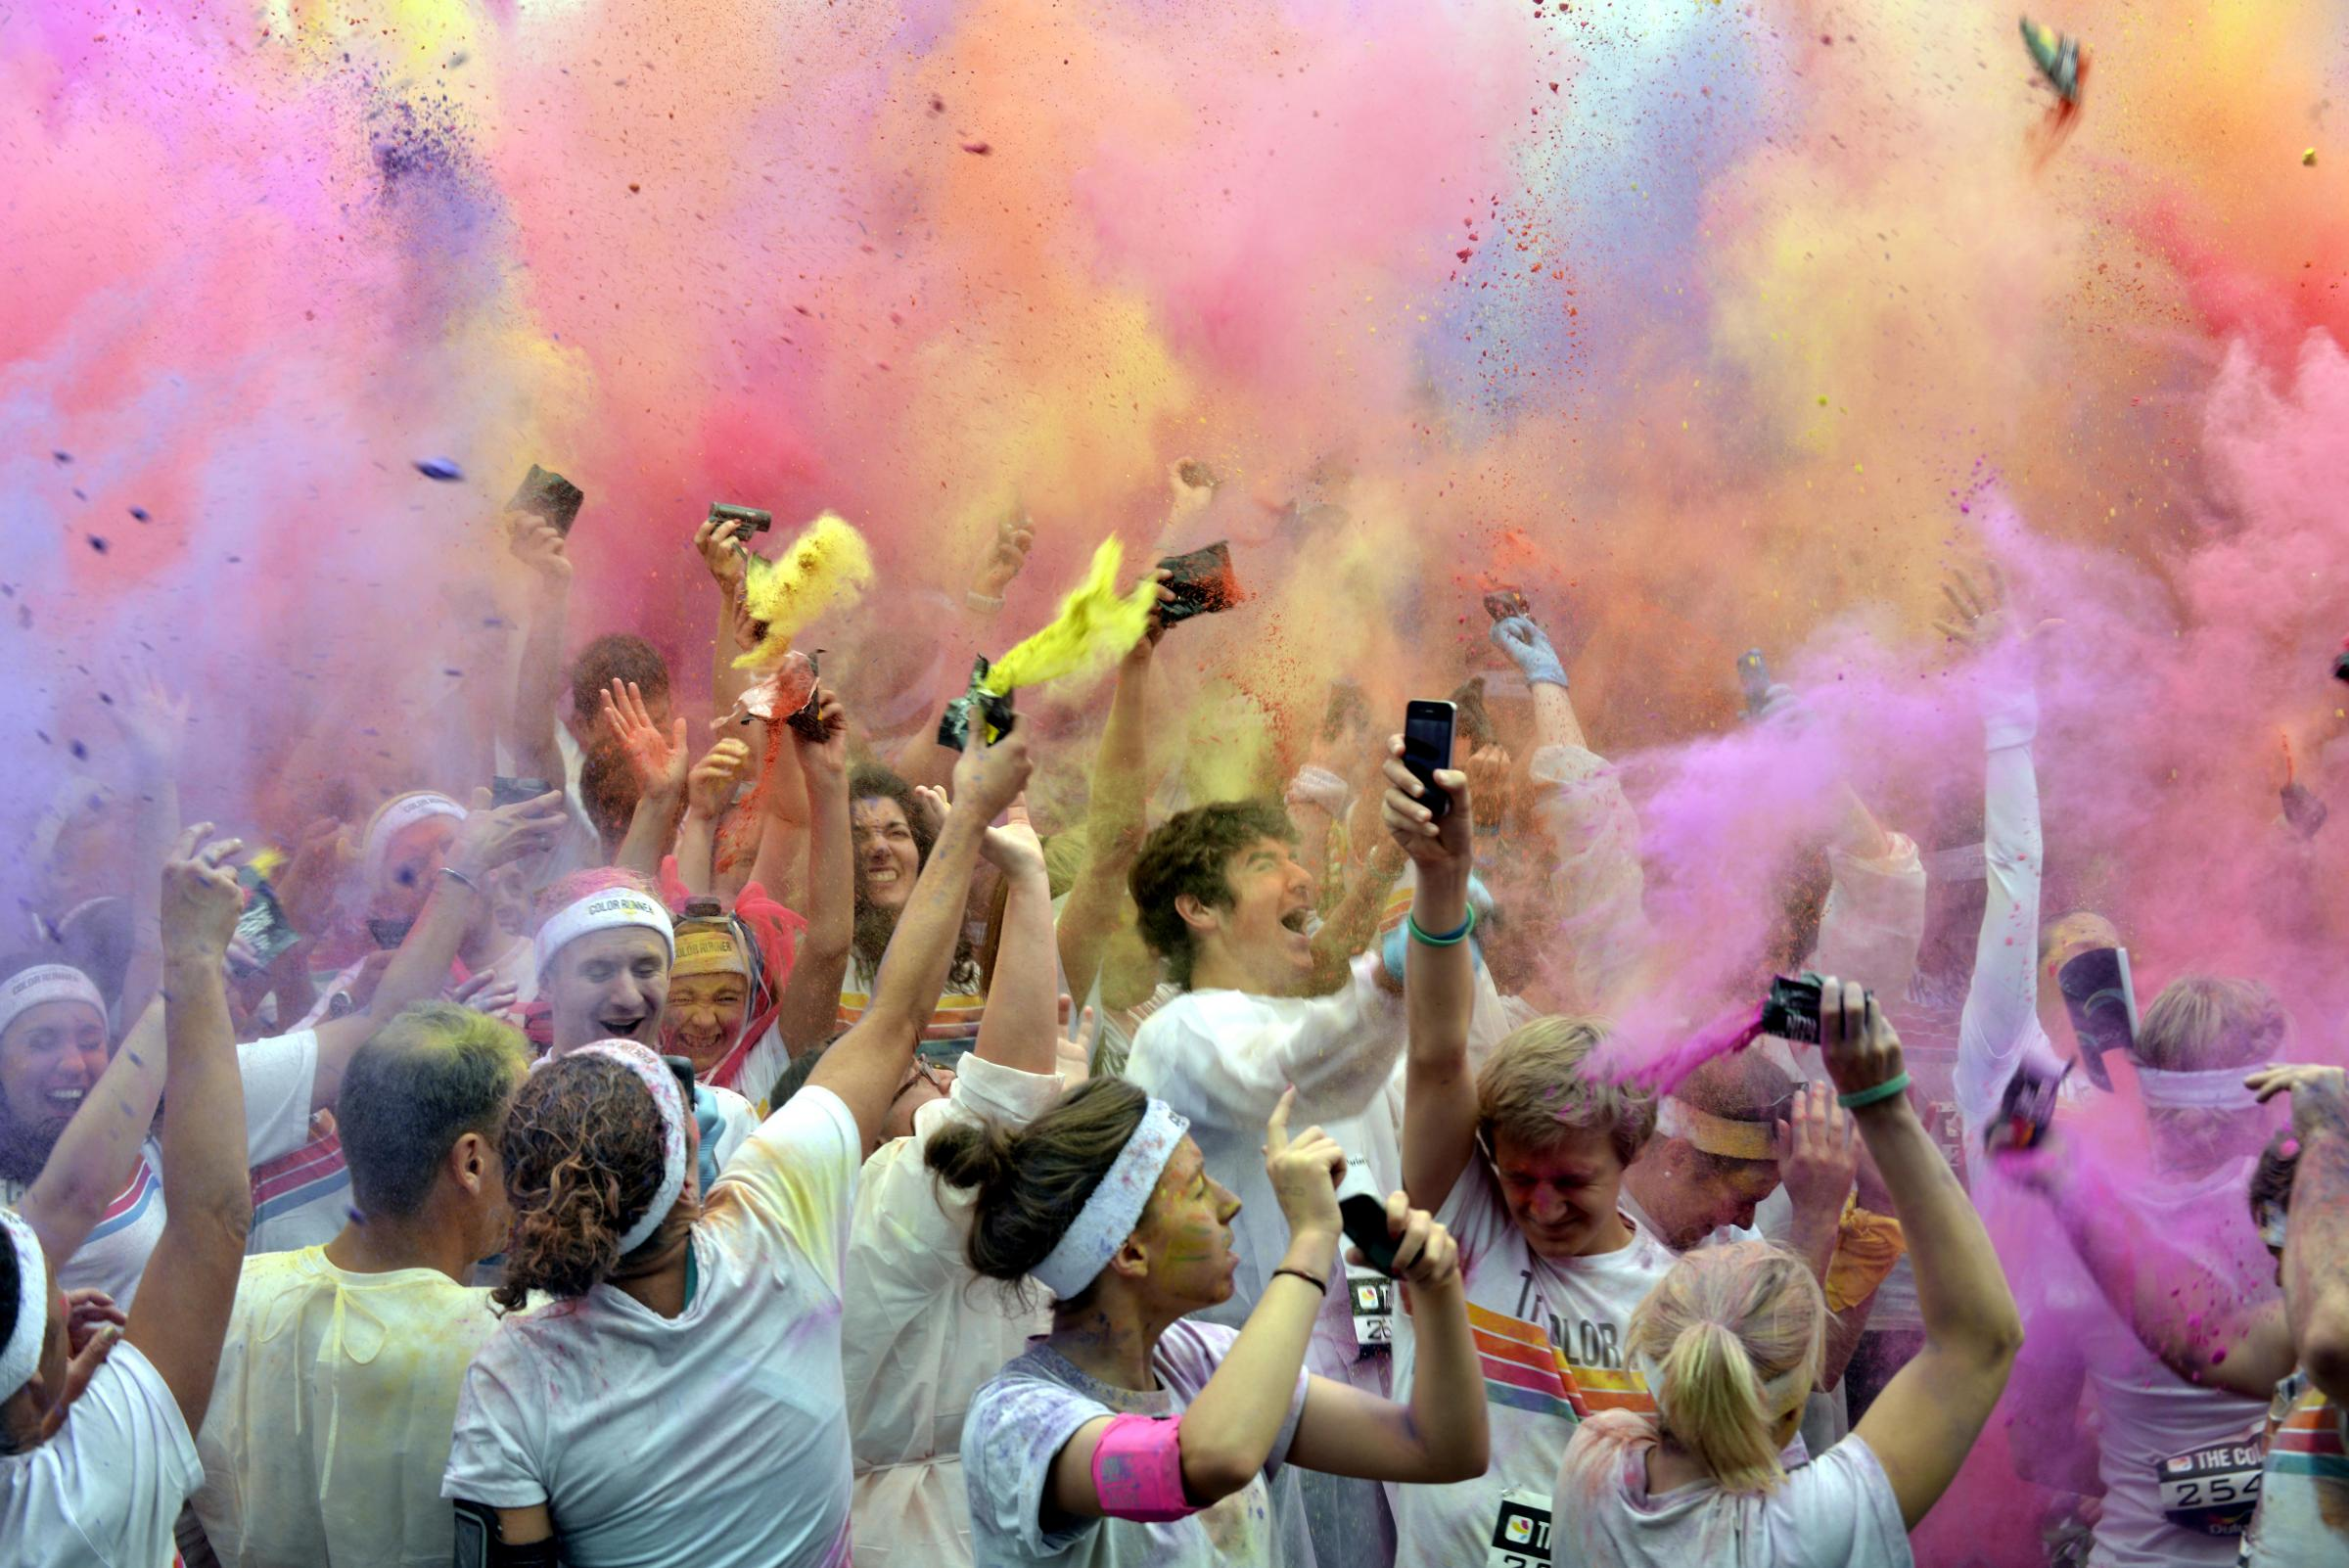 Brighton and Hove set for bright 2014 as popular Colour Run returns